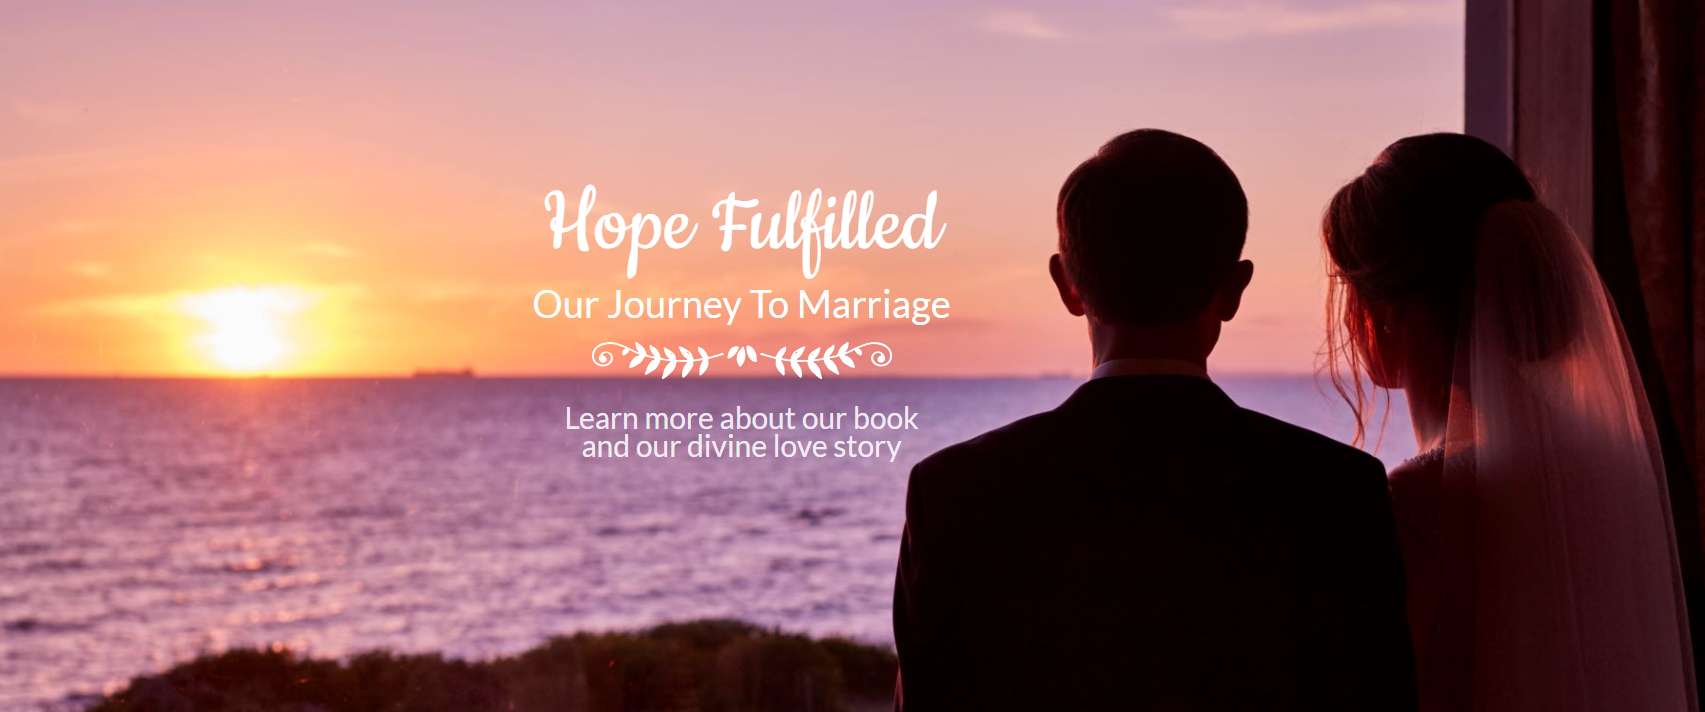 "Romance, Prophetic Words, and End Times - Insights from our New book ""Hope Fulfilled"""